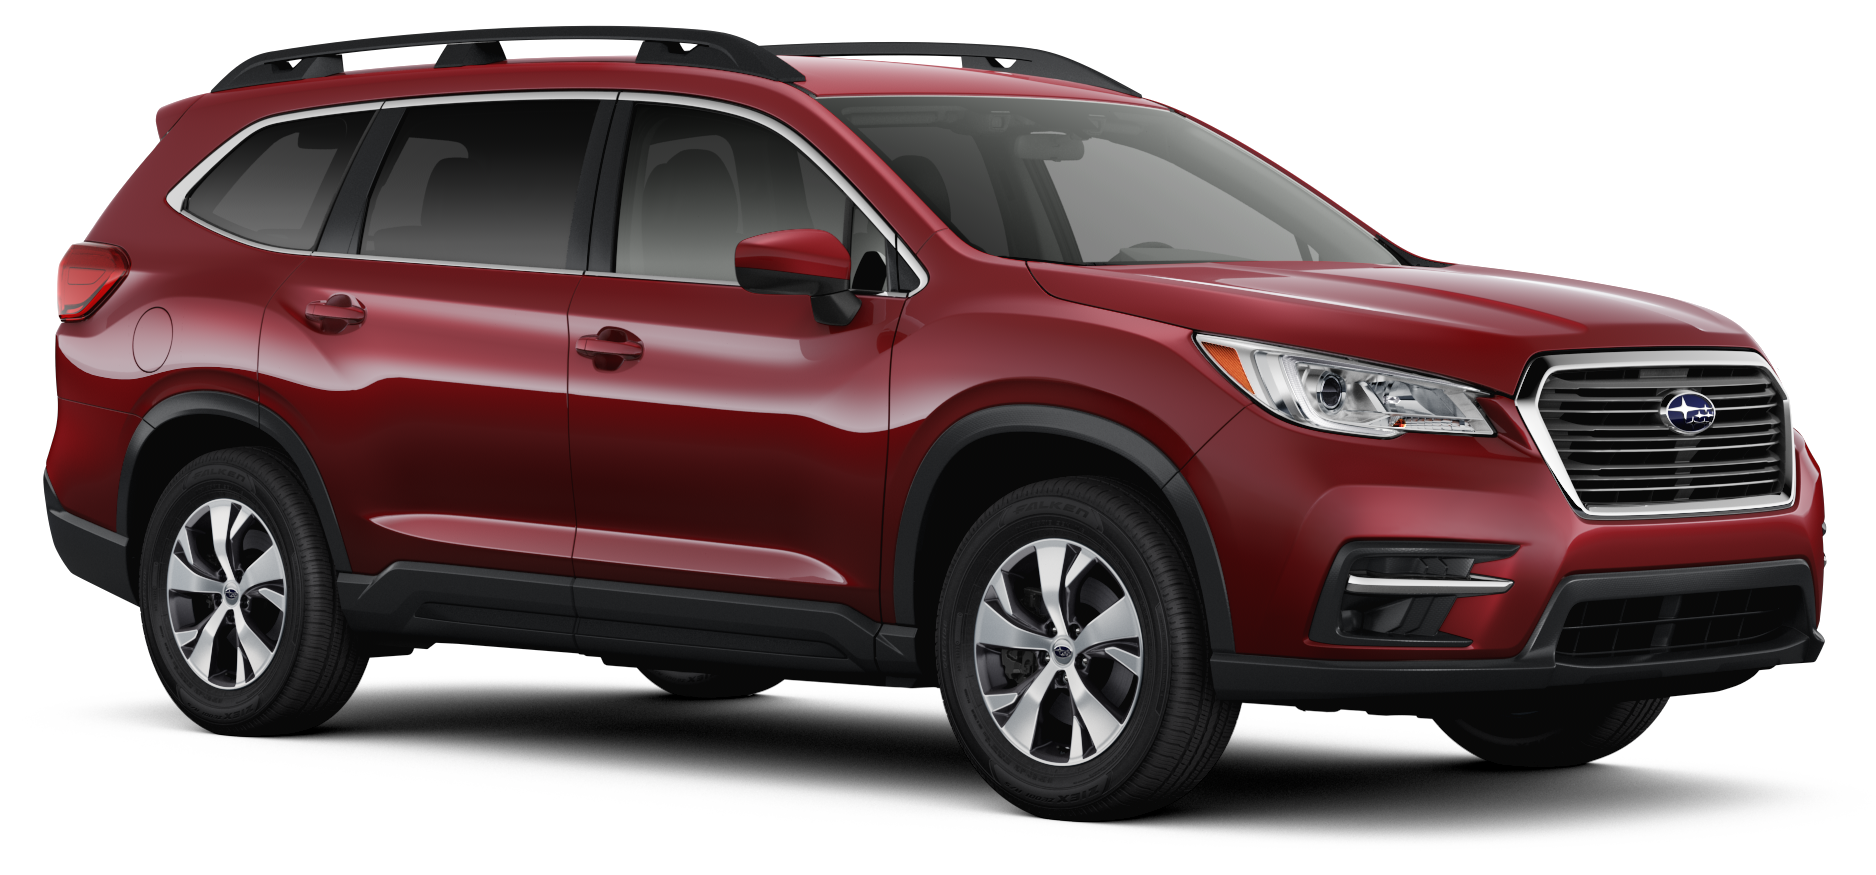 http://images.dealer.com/ddc/vehicles/2019/Subaru/Ascent/SUV/trim_Premium_8b7155/perspective/side-right/2018_13.png